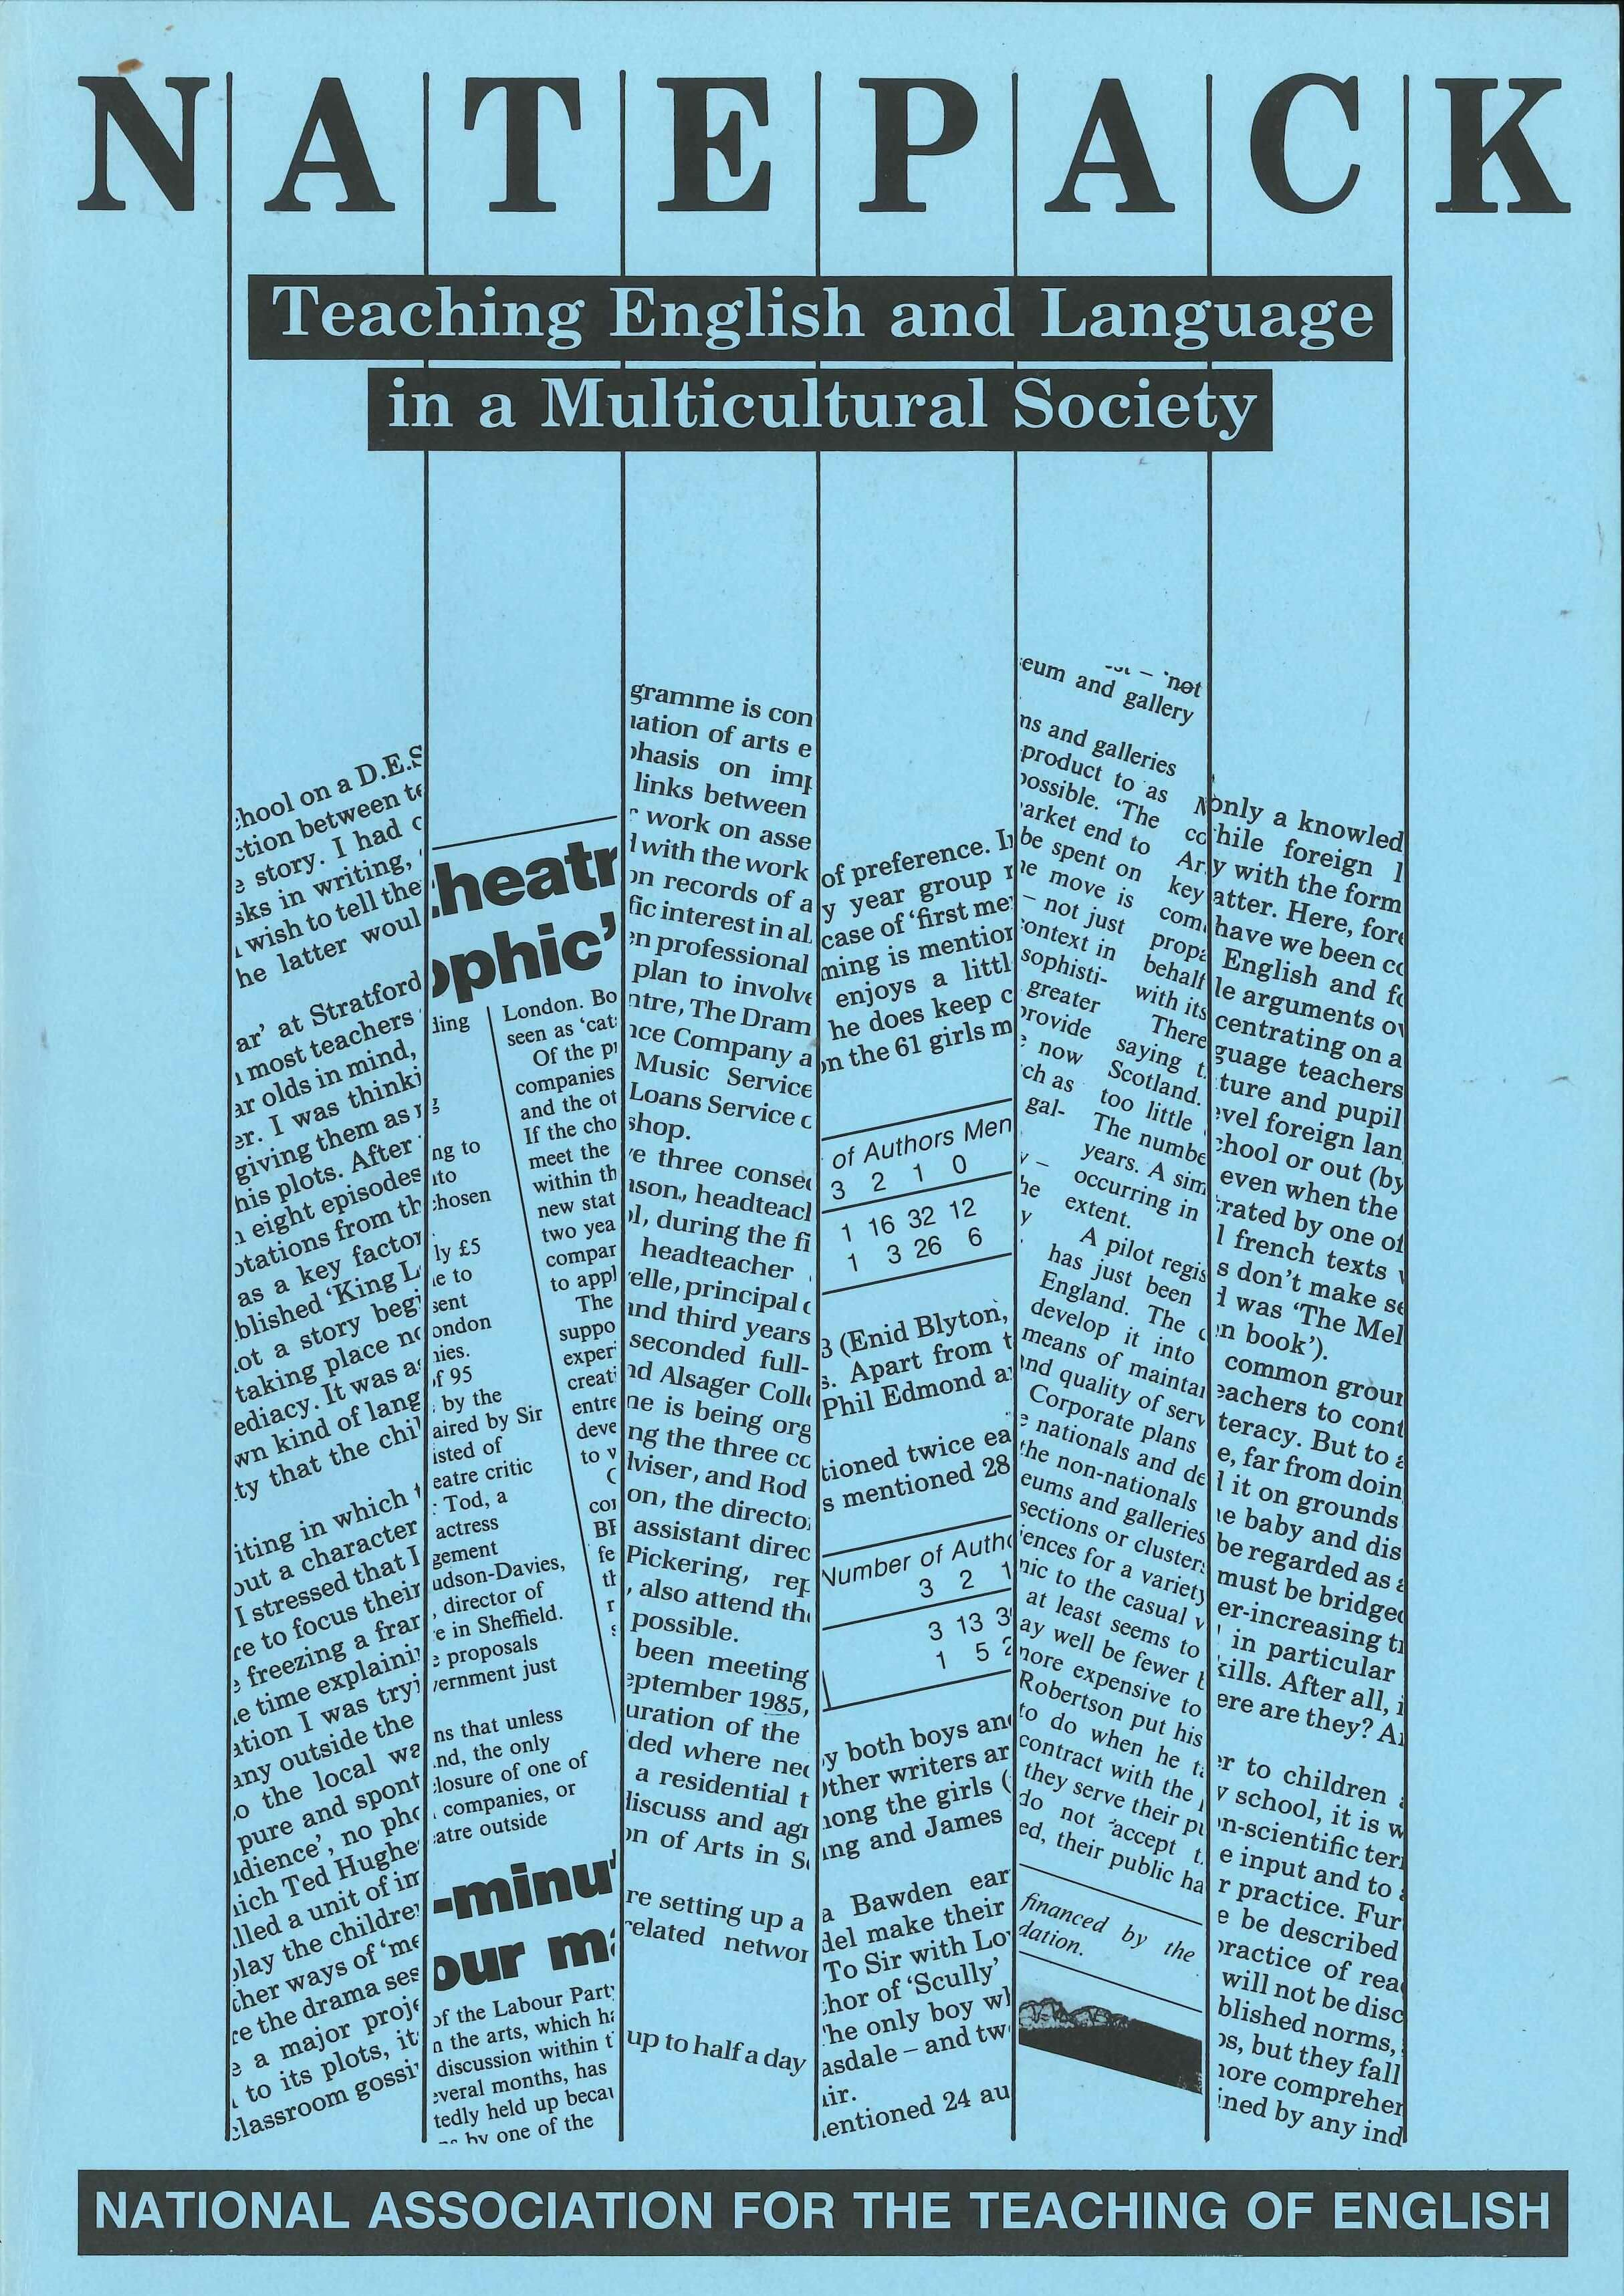 Publication titled NATEPACK: Teaching English and Language in a Multicultural Society. Front cover, with black text on a blue background.